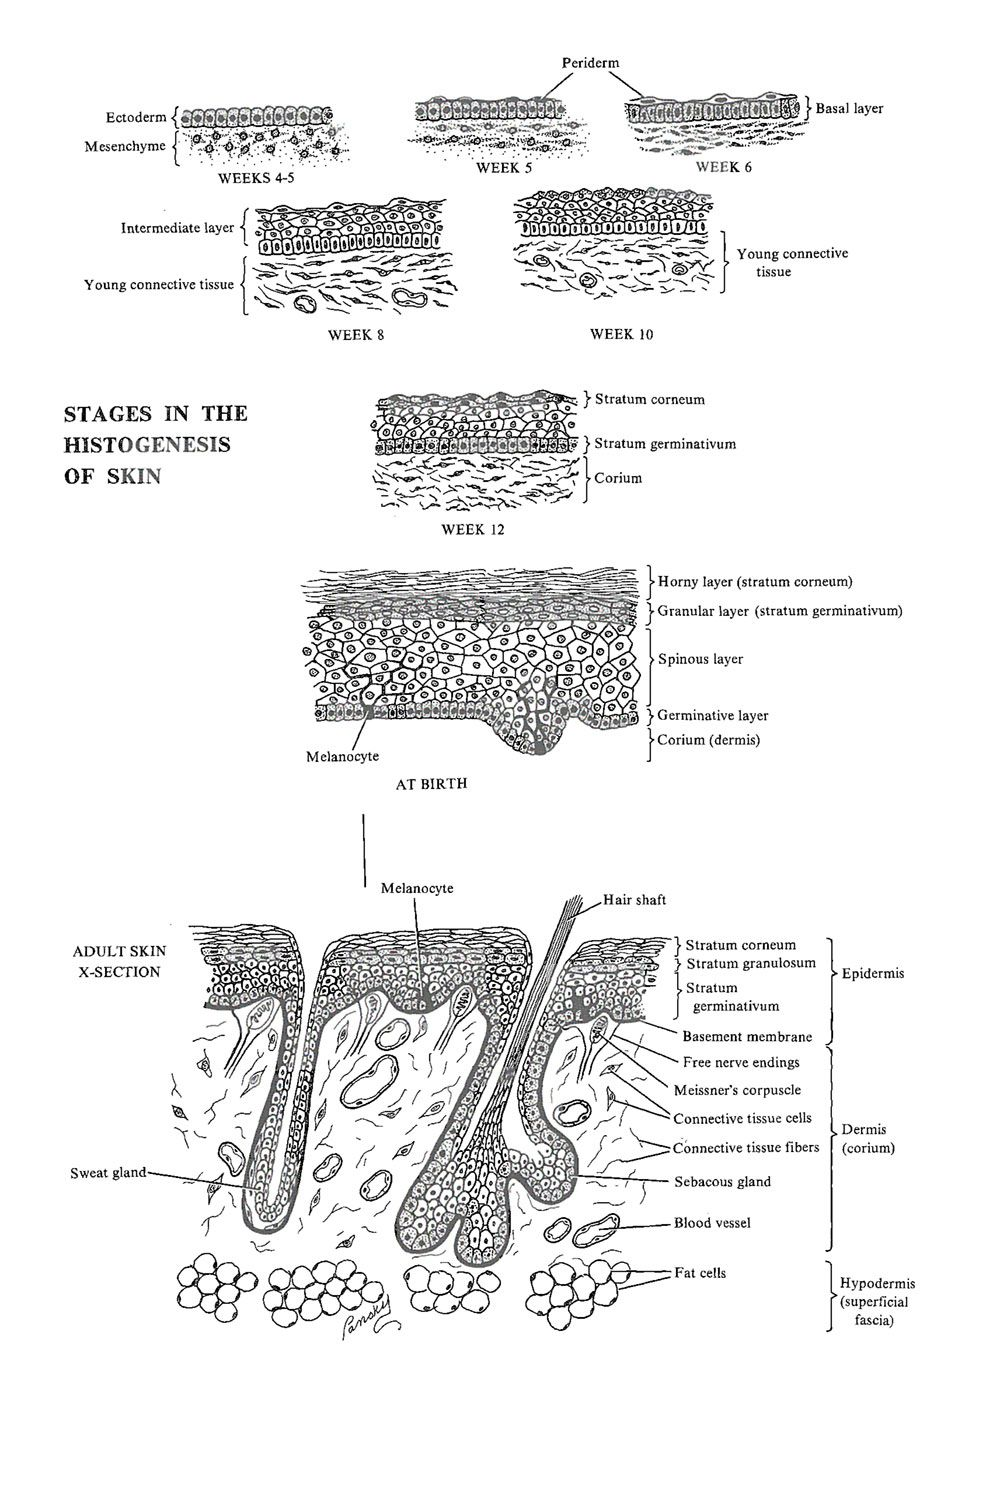 Development Of The Integumentary System Ectodermal Derivatives Image 1 Integumentary System Development System